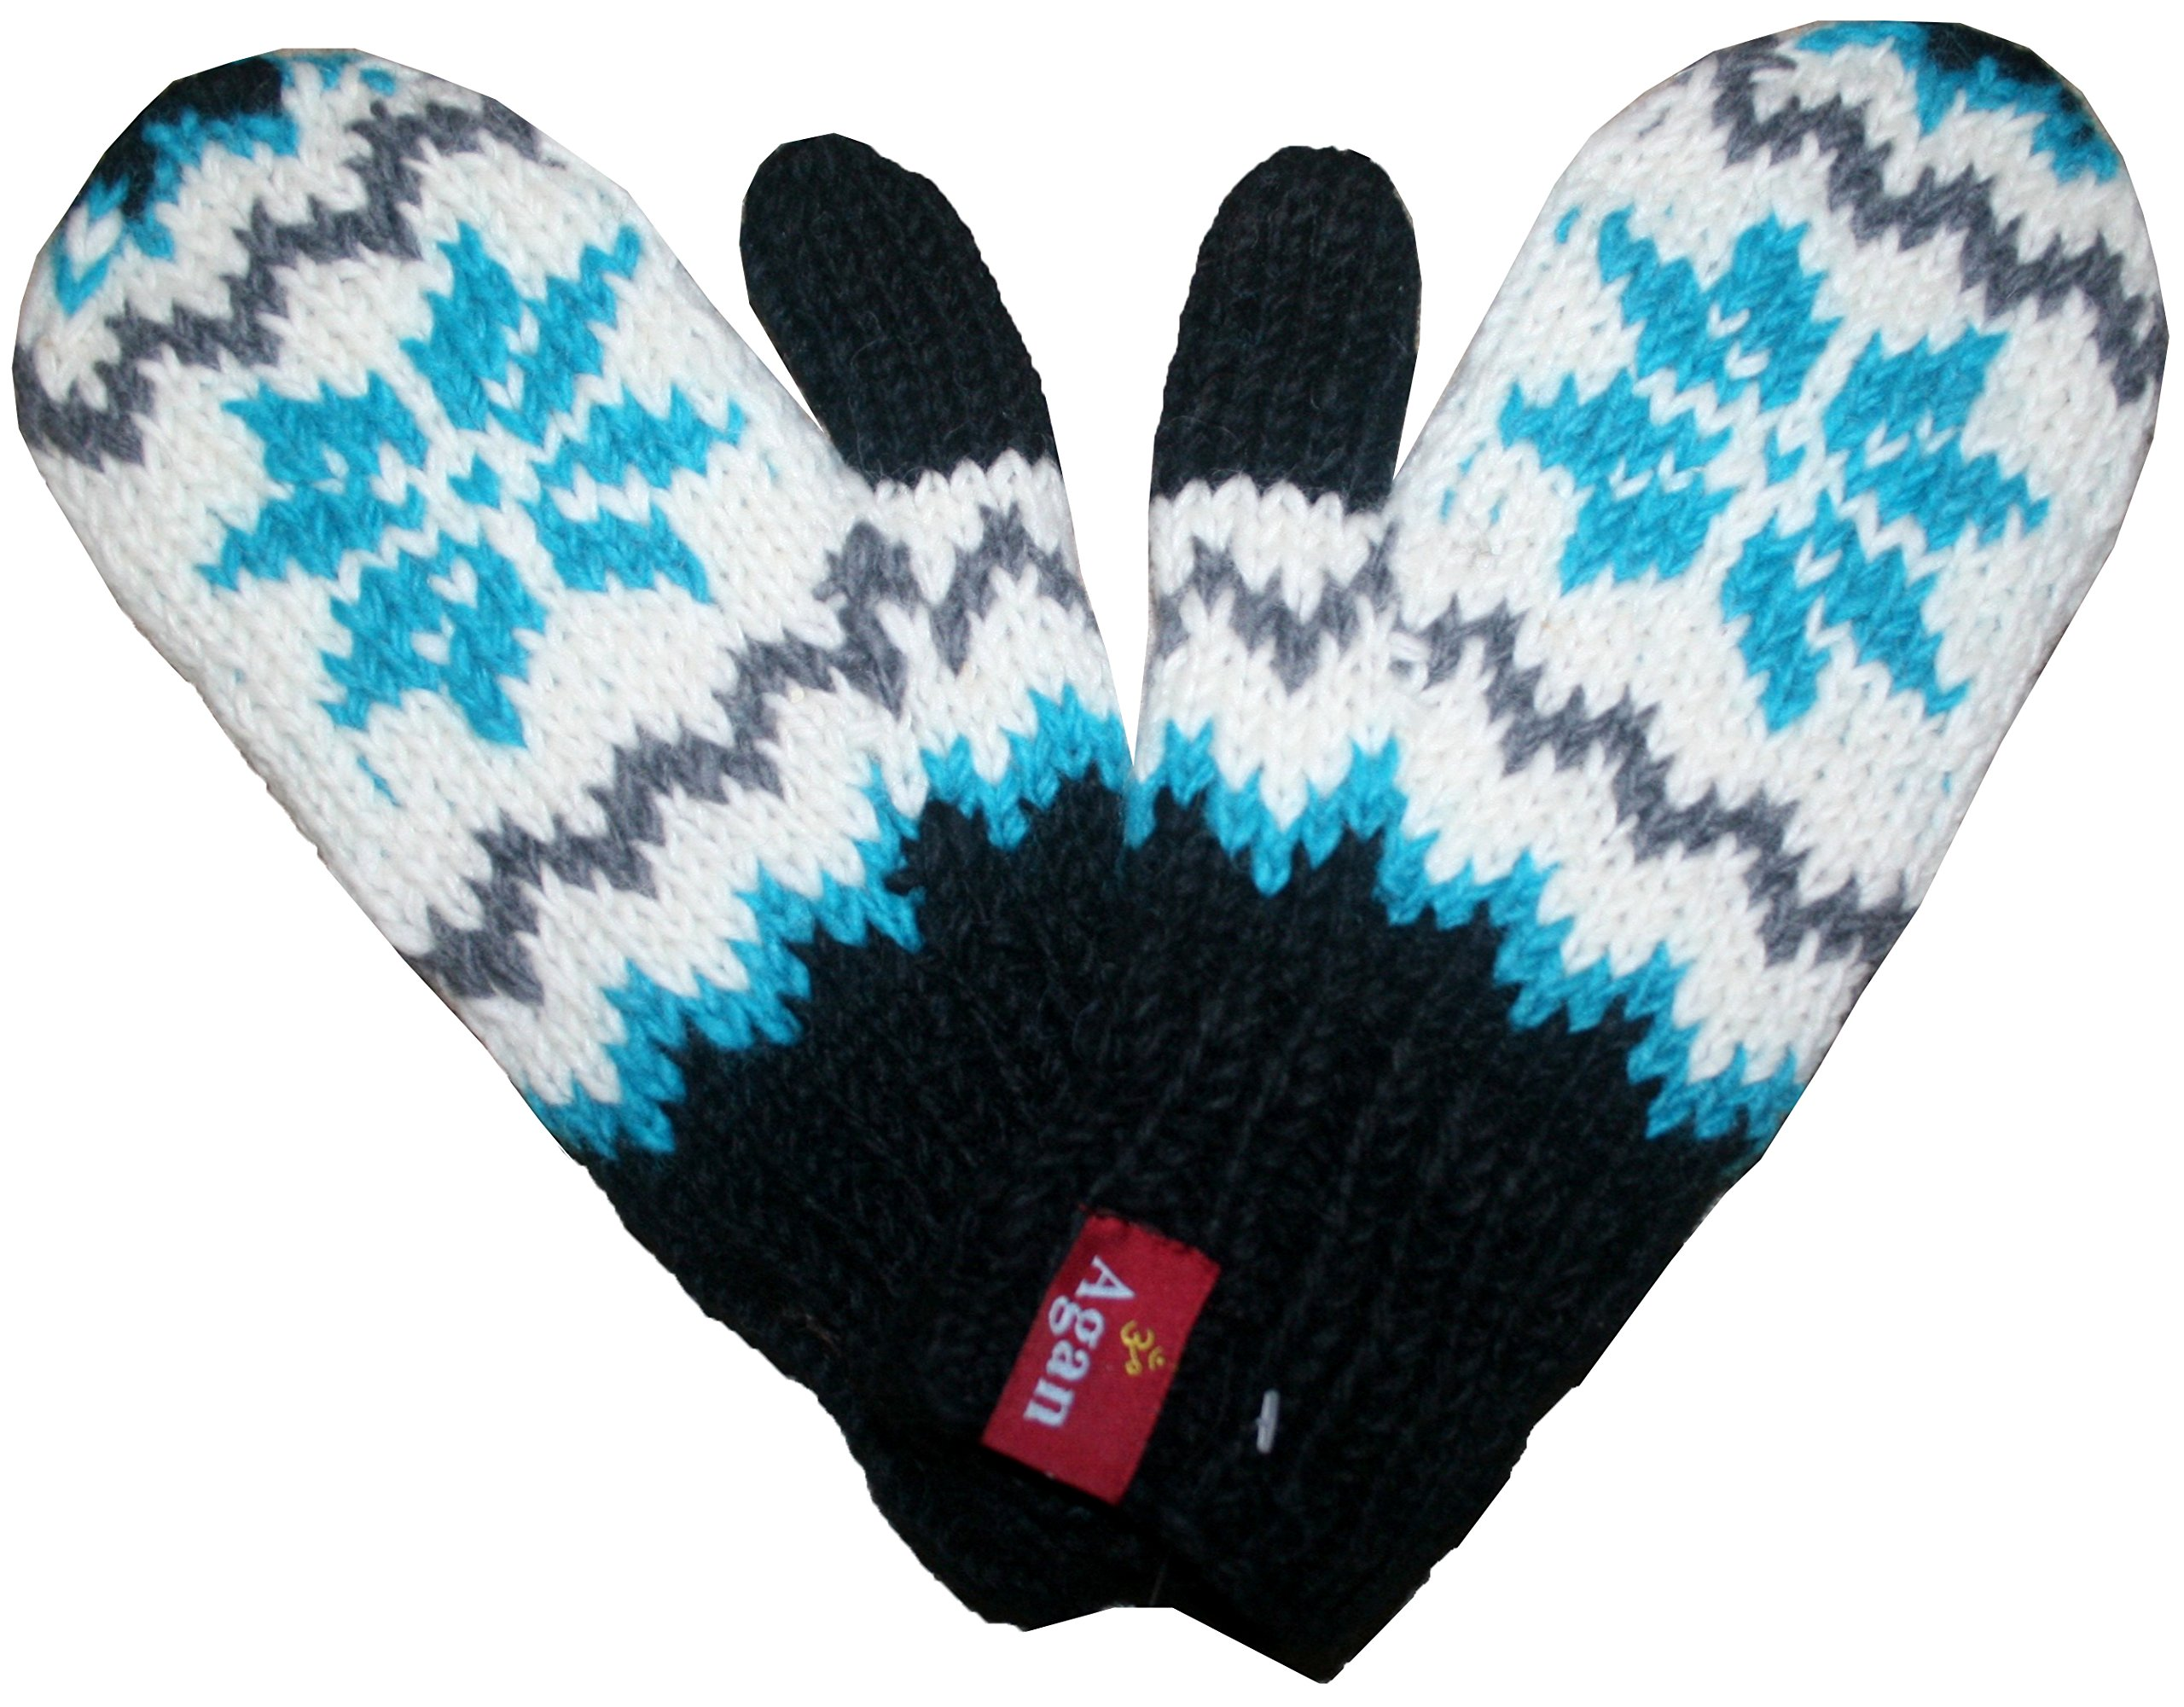 1419 MT Agan Traders Knit Wool Lalupate Mitten (Turquoise/White) by Agan Traders